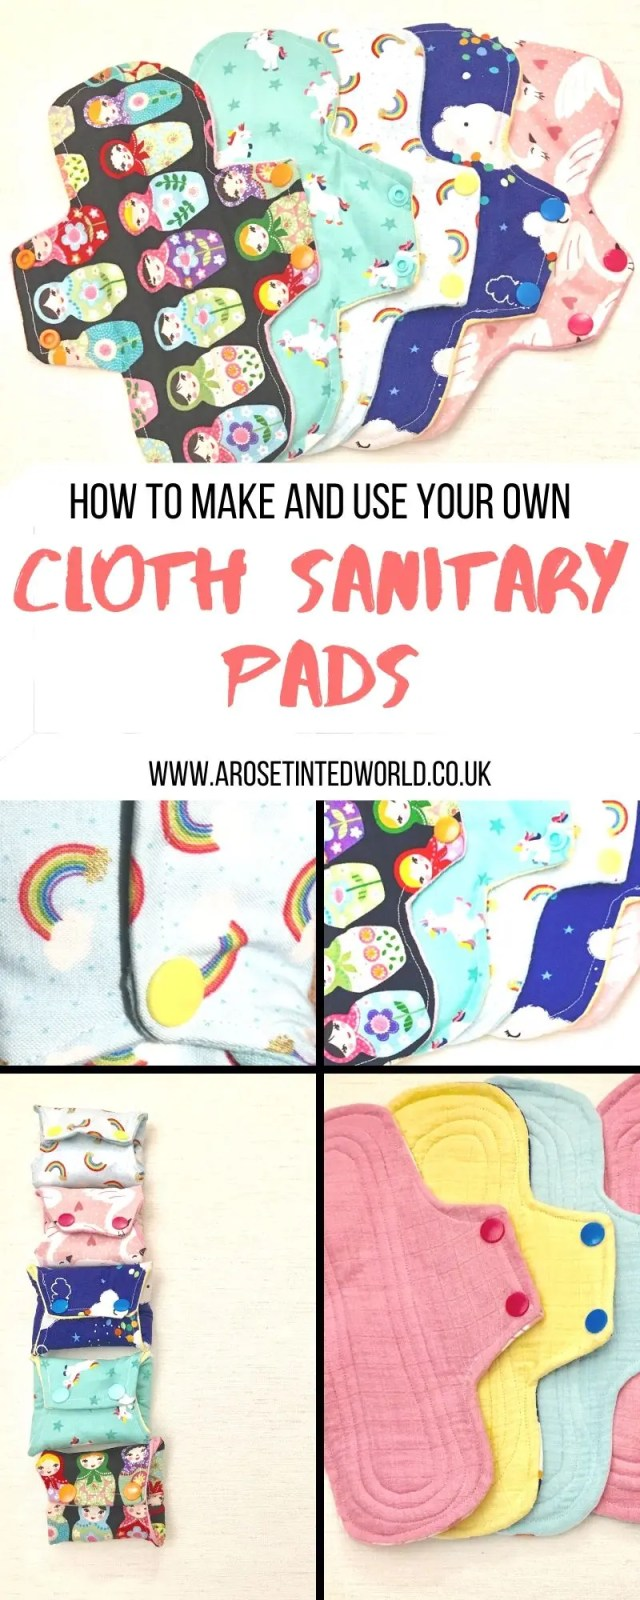 Reusable Sanitary Pads - How To Make And Use Them ⋆ These are a great way of upcycling old clothes and bedding. Find out the advantages. How to wash. How to clean. How to make. Chart of core layers needed. Materials to use. Step by step tutorial on how to make these zero waste items #upcycling #reusablesanitarypads #zerowaste #makeyourownsanitarypads #sewingtutorial #zerowasteliving #zerowastelifestyle #upcycledclothes #recycle  #upcyclingclothes #recycledfashion #ecofriendly